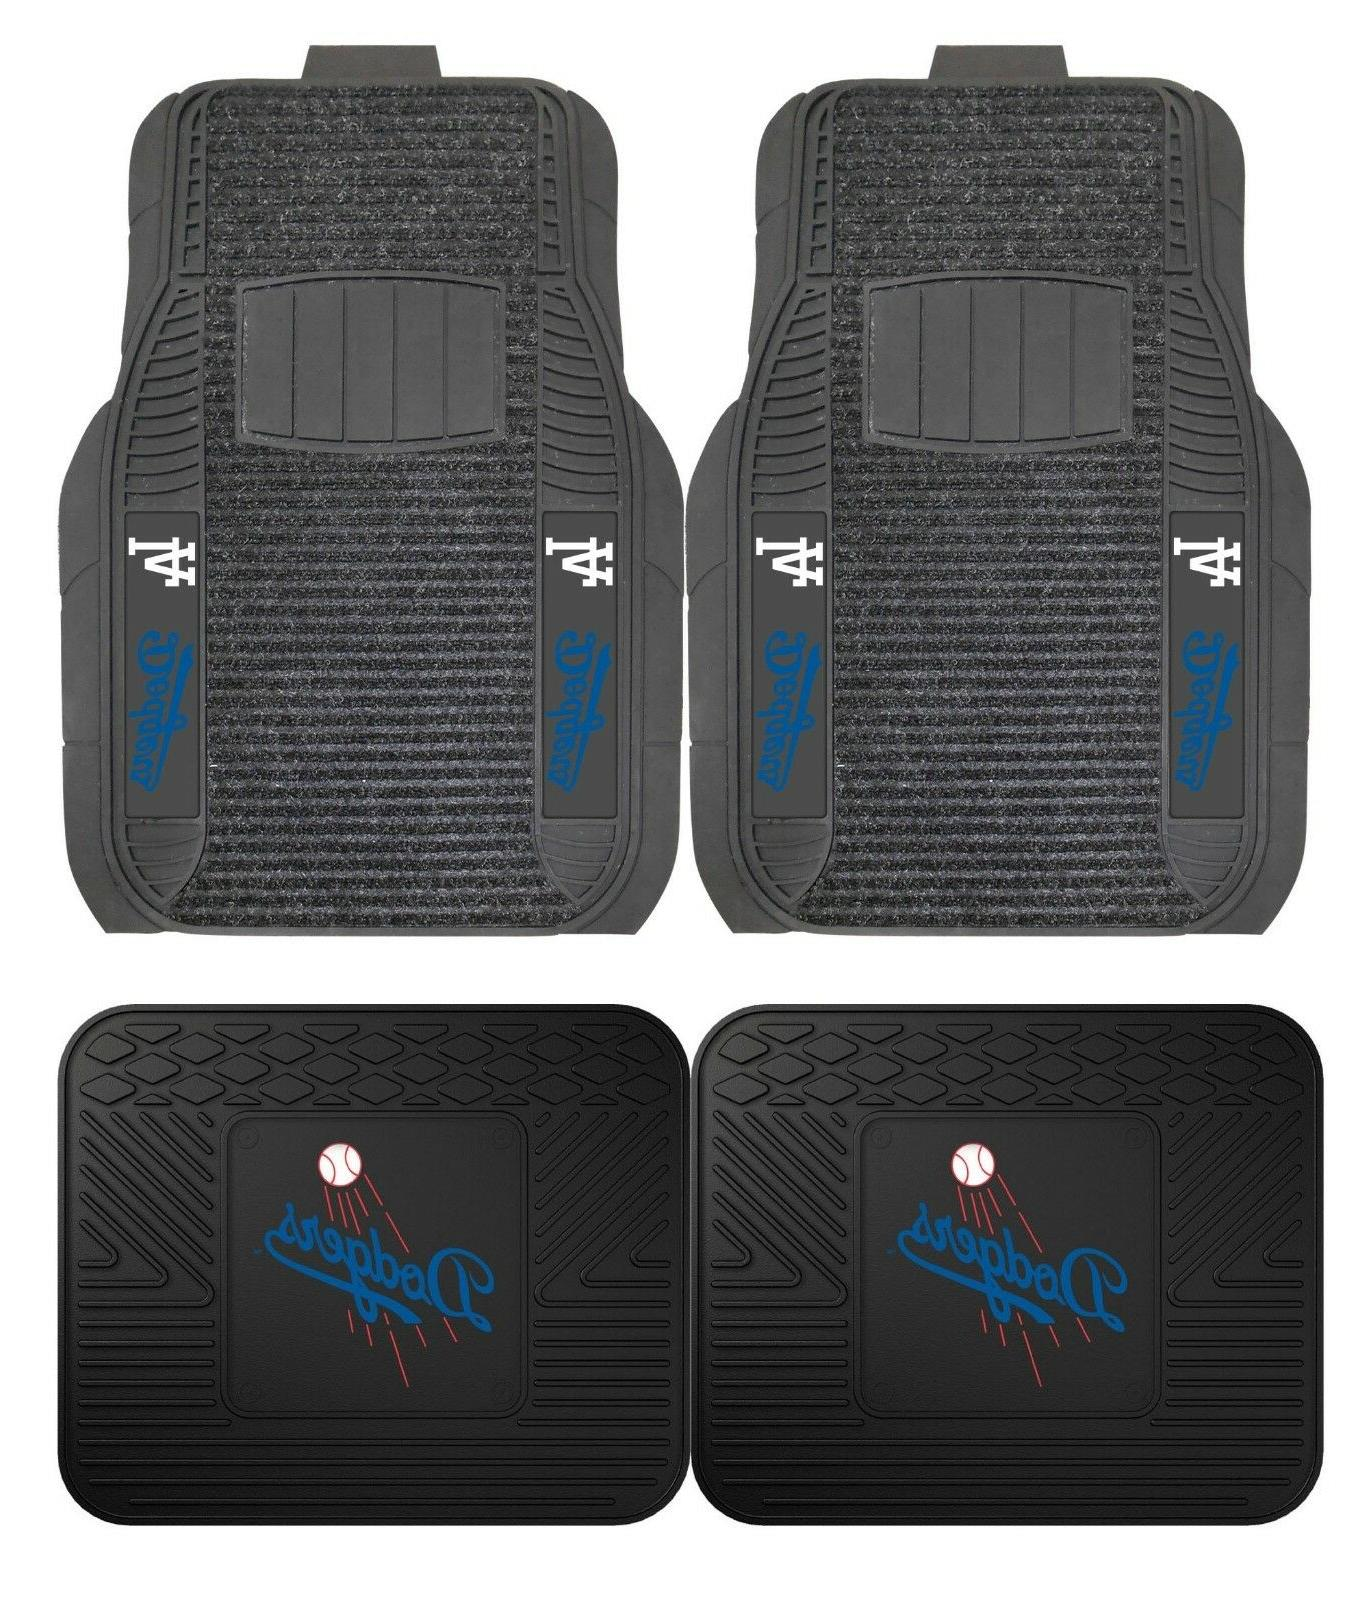 los angeles dodgers deluxe auto floor mats